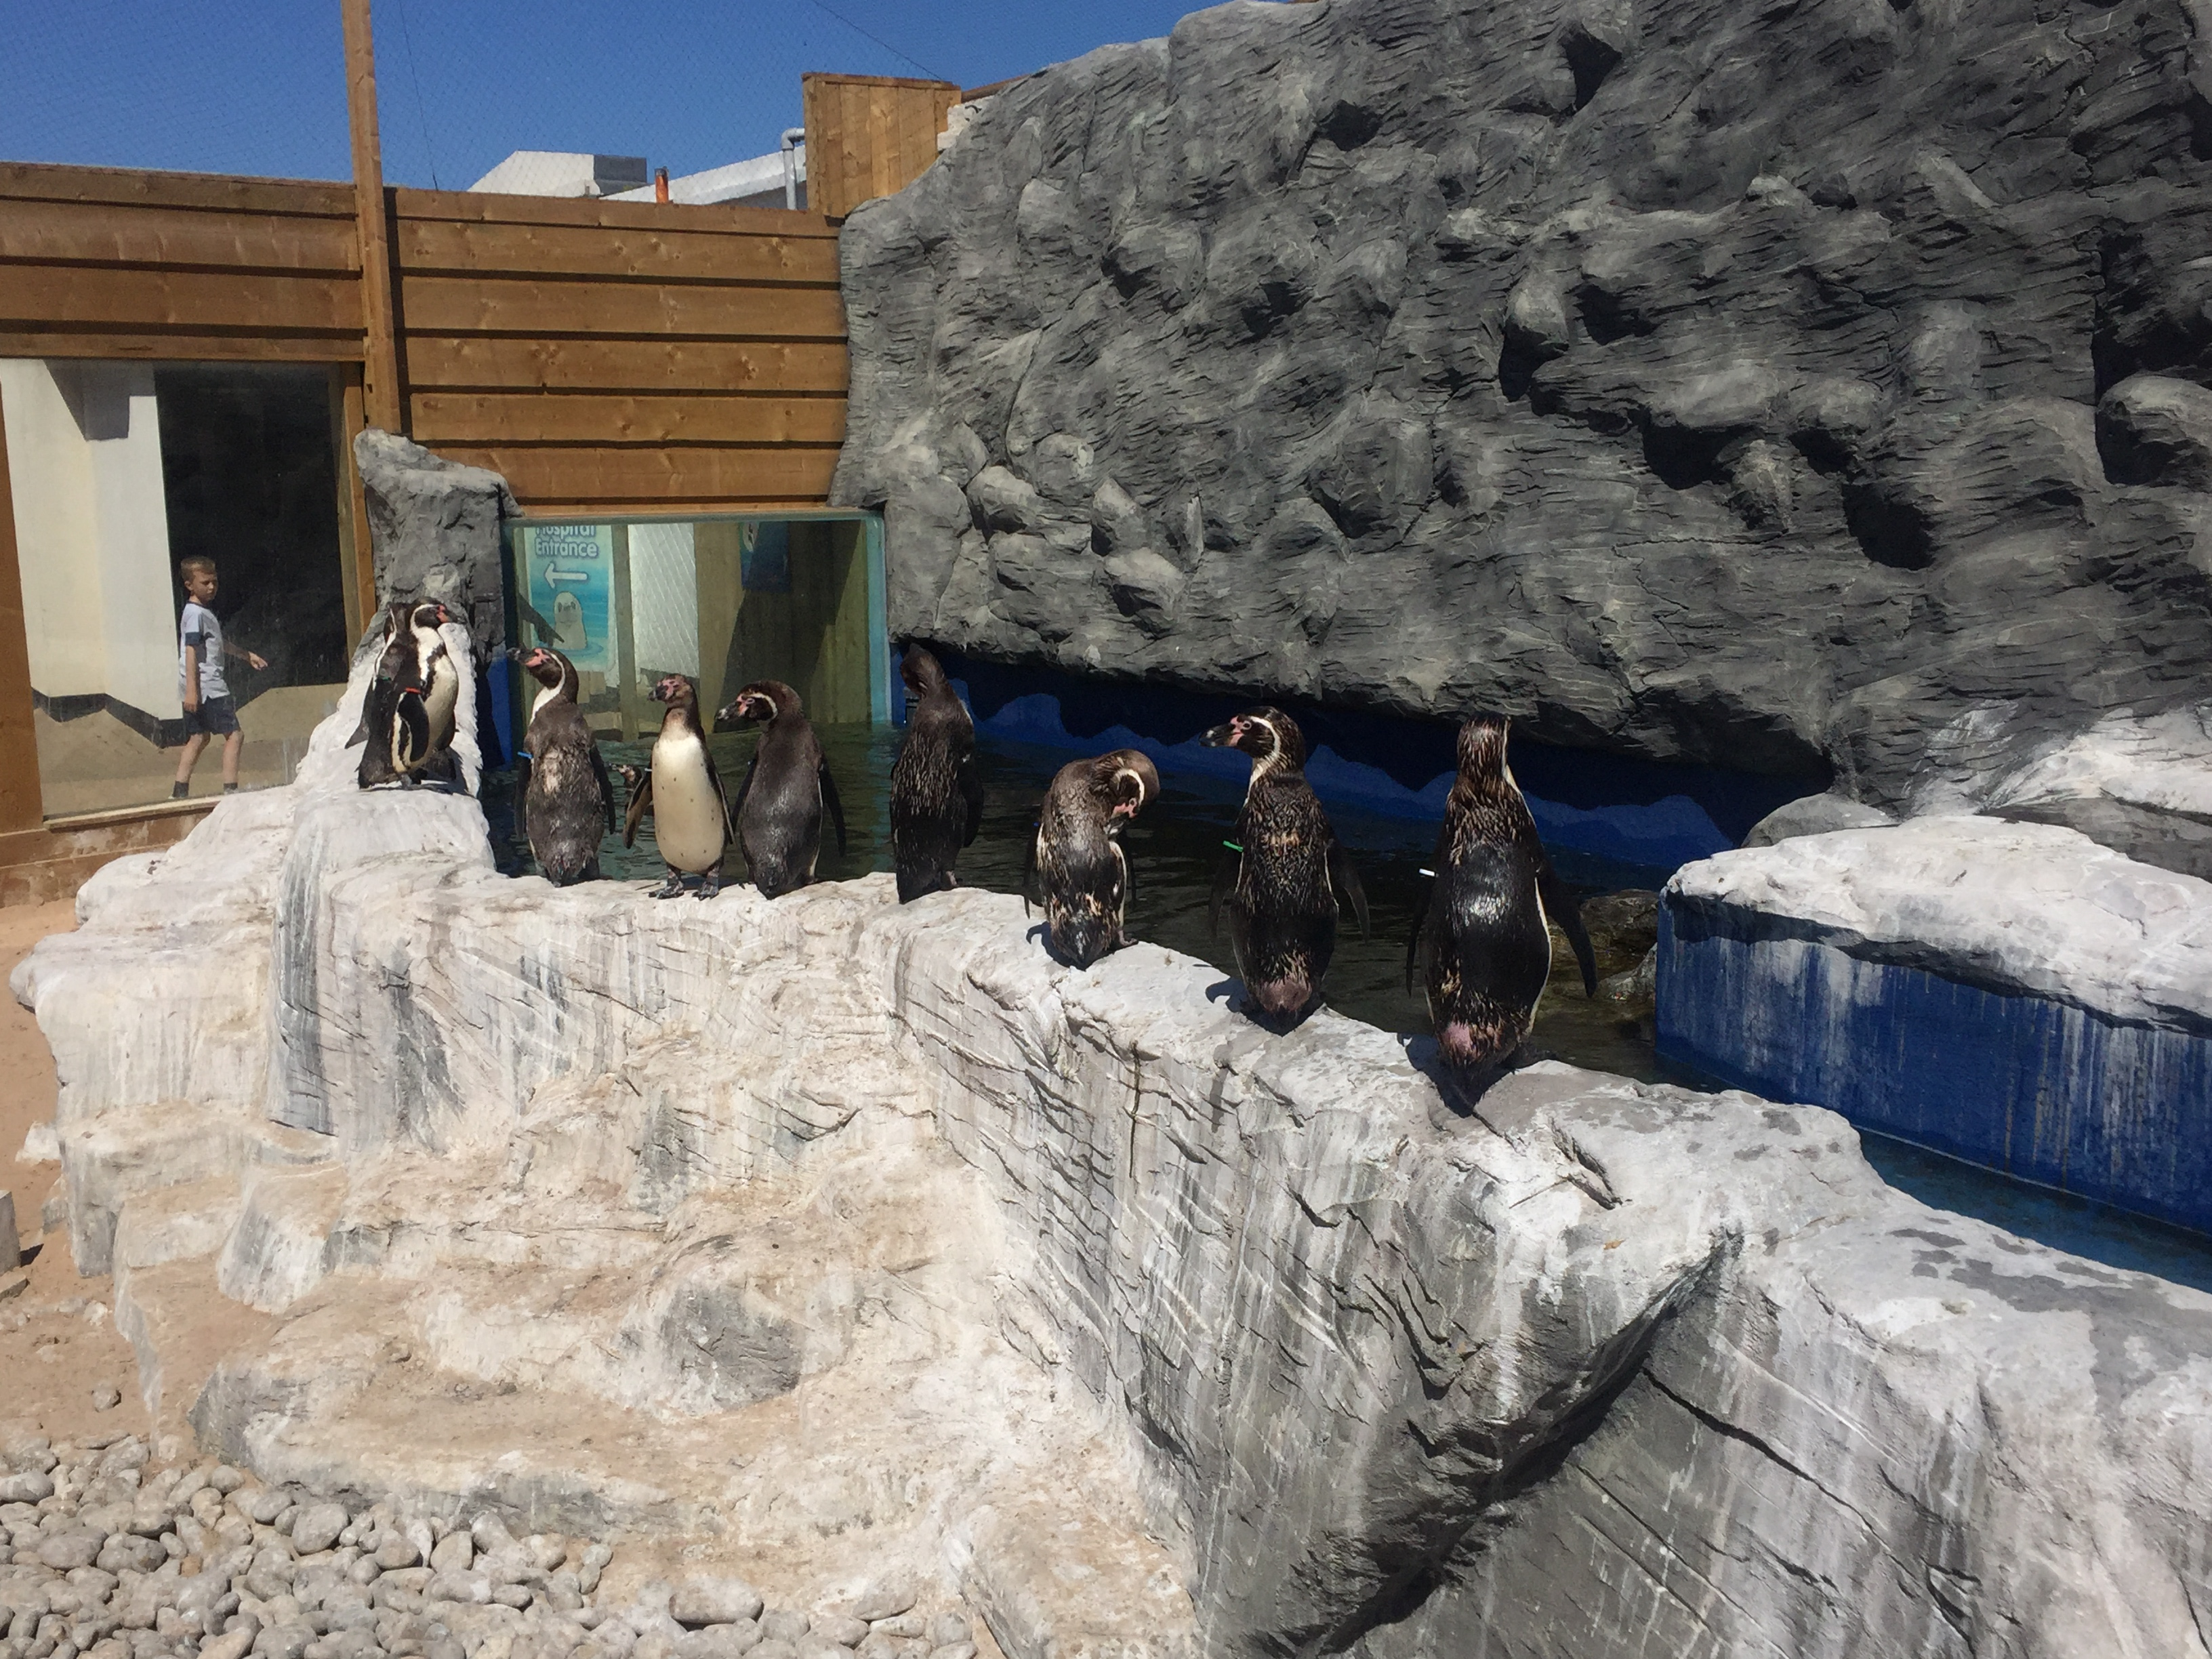 Penguins lining up to be fed at Hunstanton Sea Life Centre.